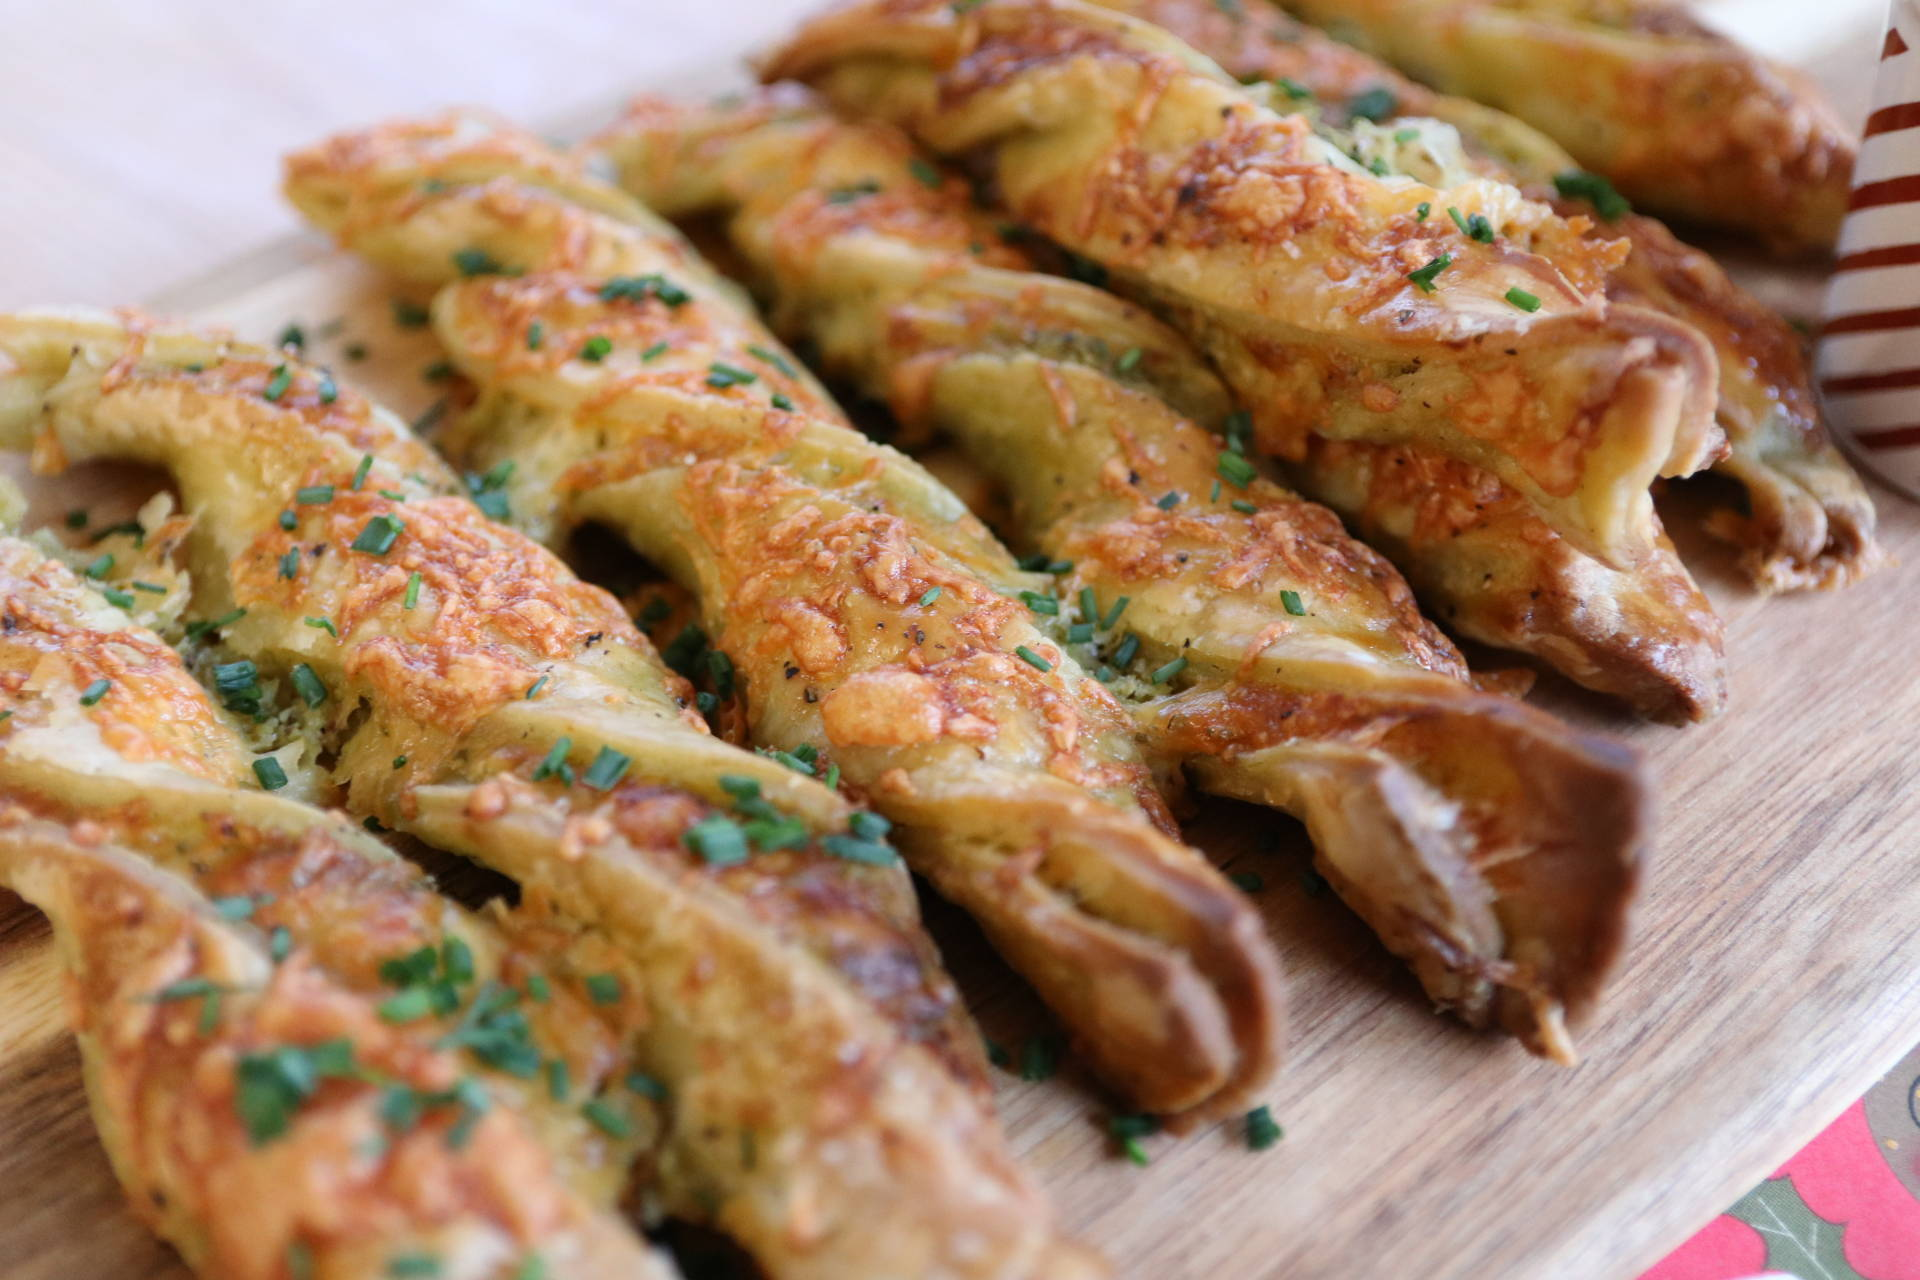 RECIPE: Gluten Free Cheese and Pesto Straws (Dairy Free) using Jus-Rol Gluten Free Puff Pastry